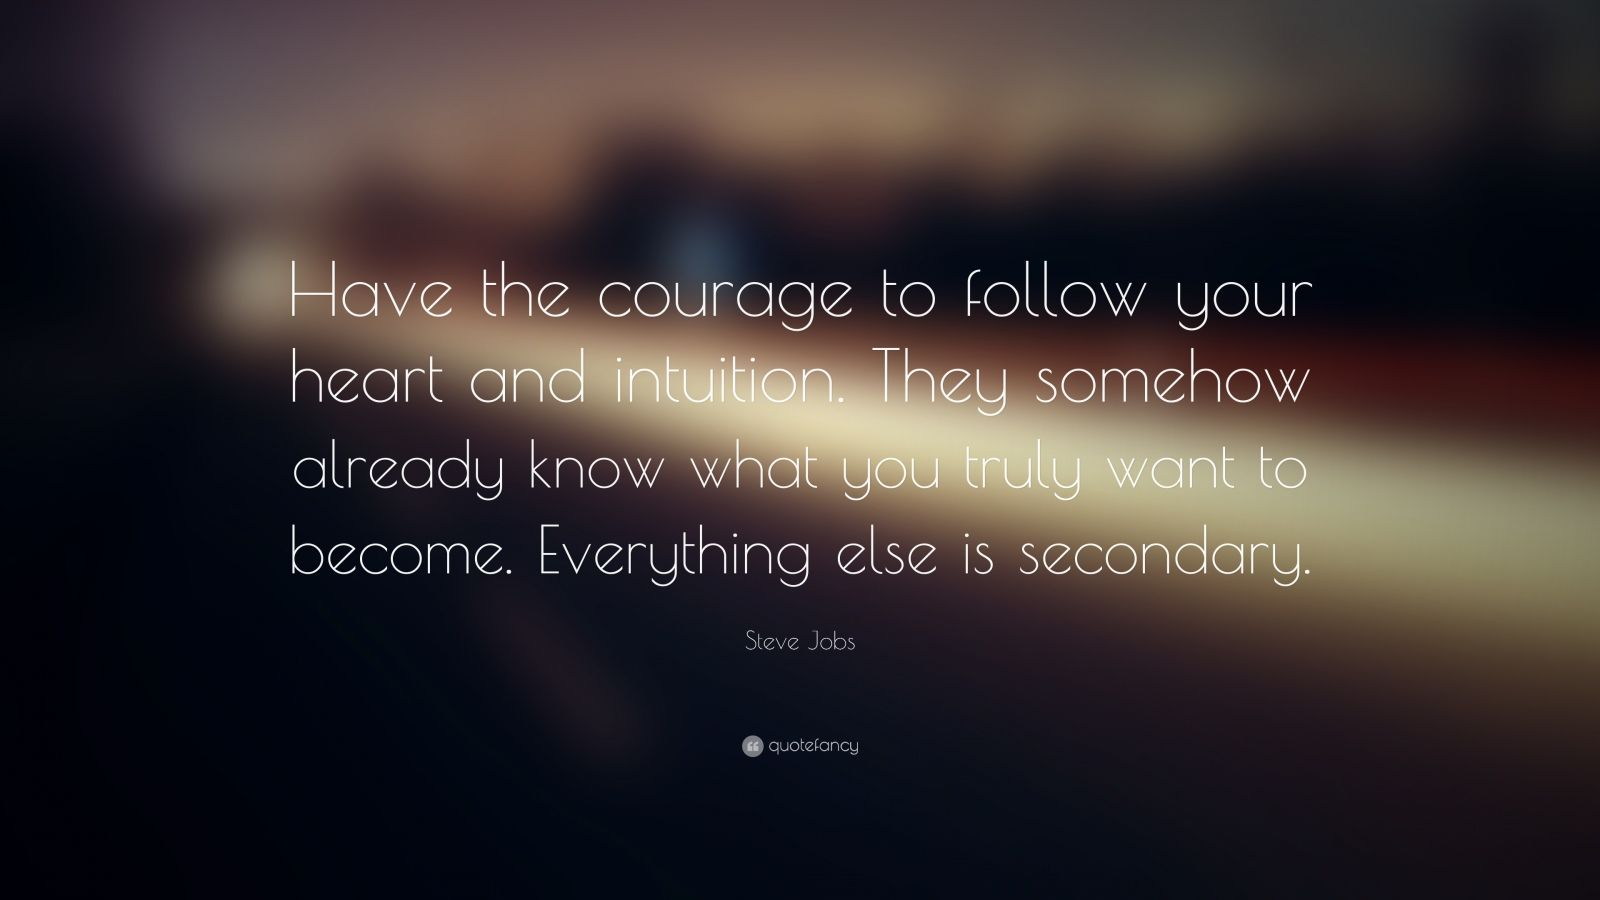 Steve Jobs Quotes 100 Wallpapers